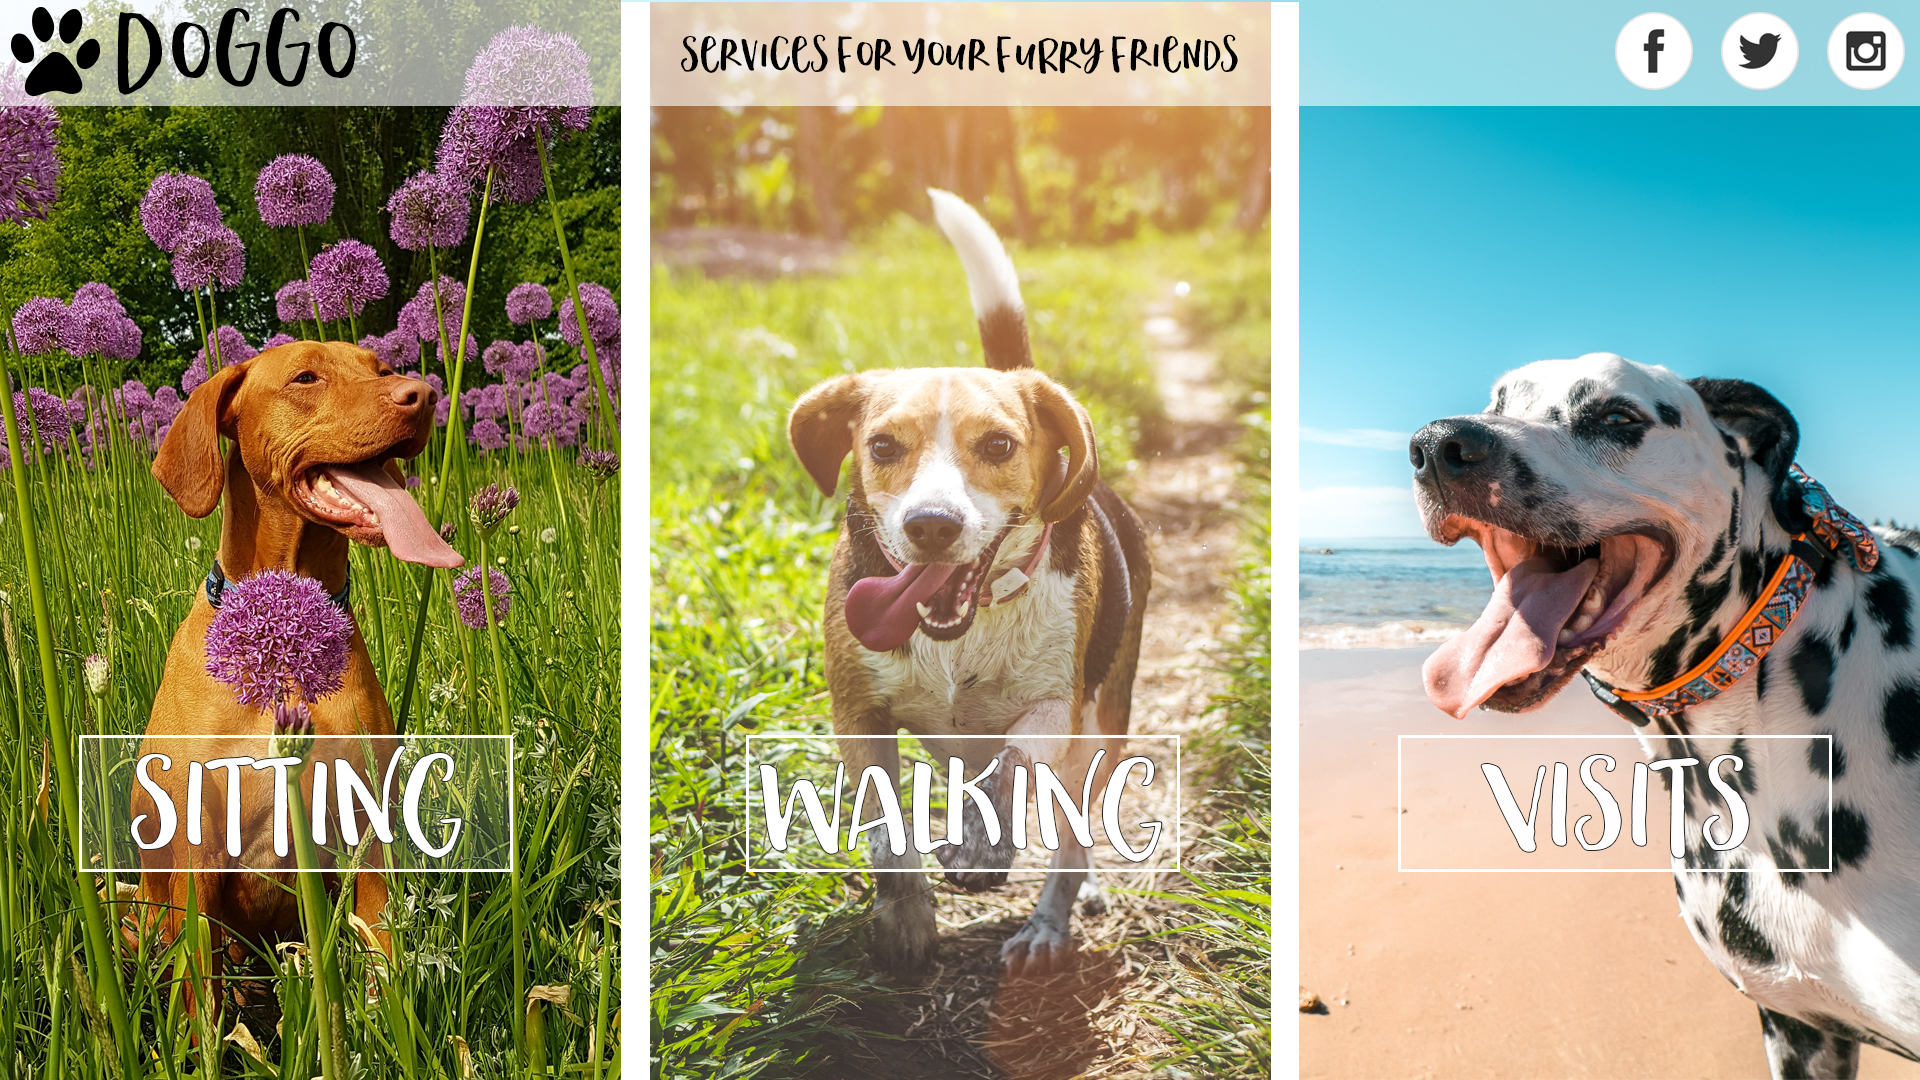 Website Concept  DOGGO Local concierge services for dog owners.